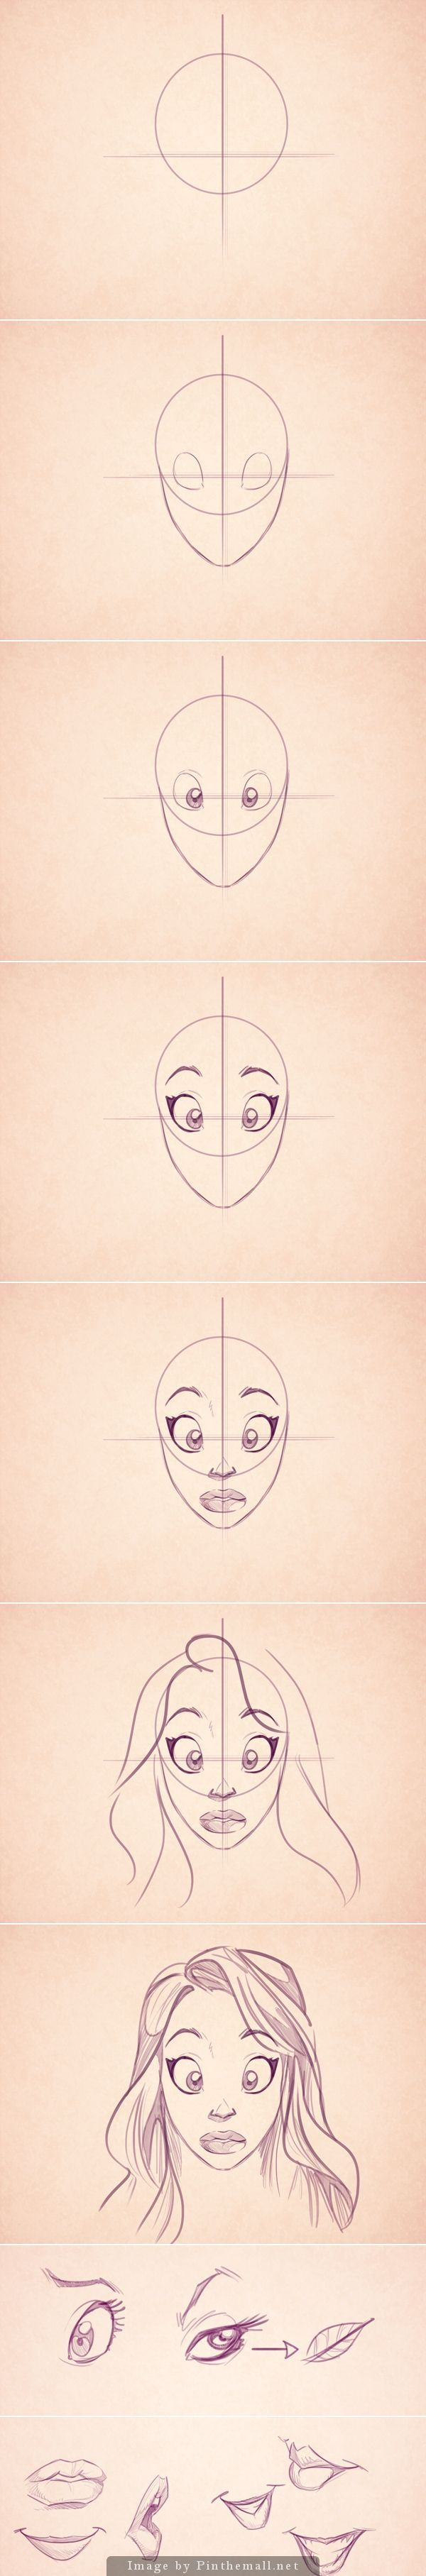 Cartoon Fundamentals: How to Draw the Female Form: